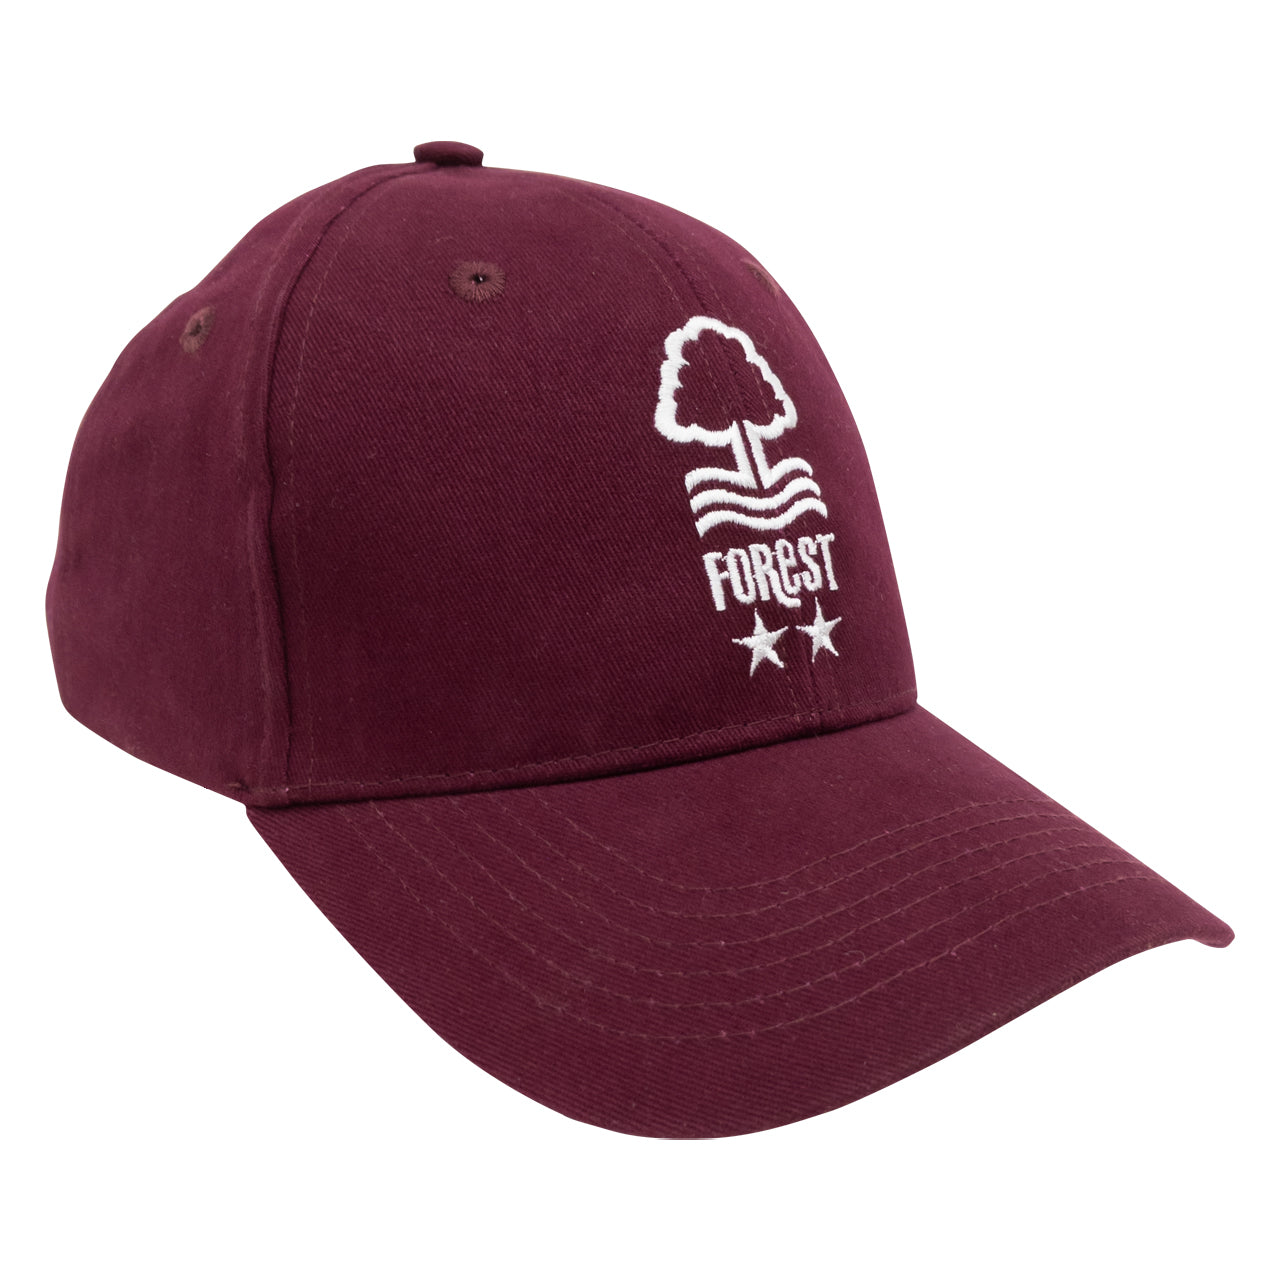 NFFC Ruby Adult Cap